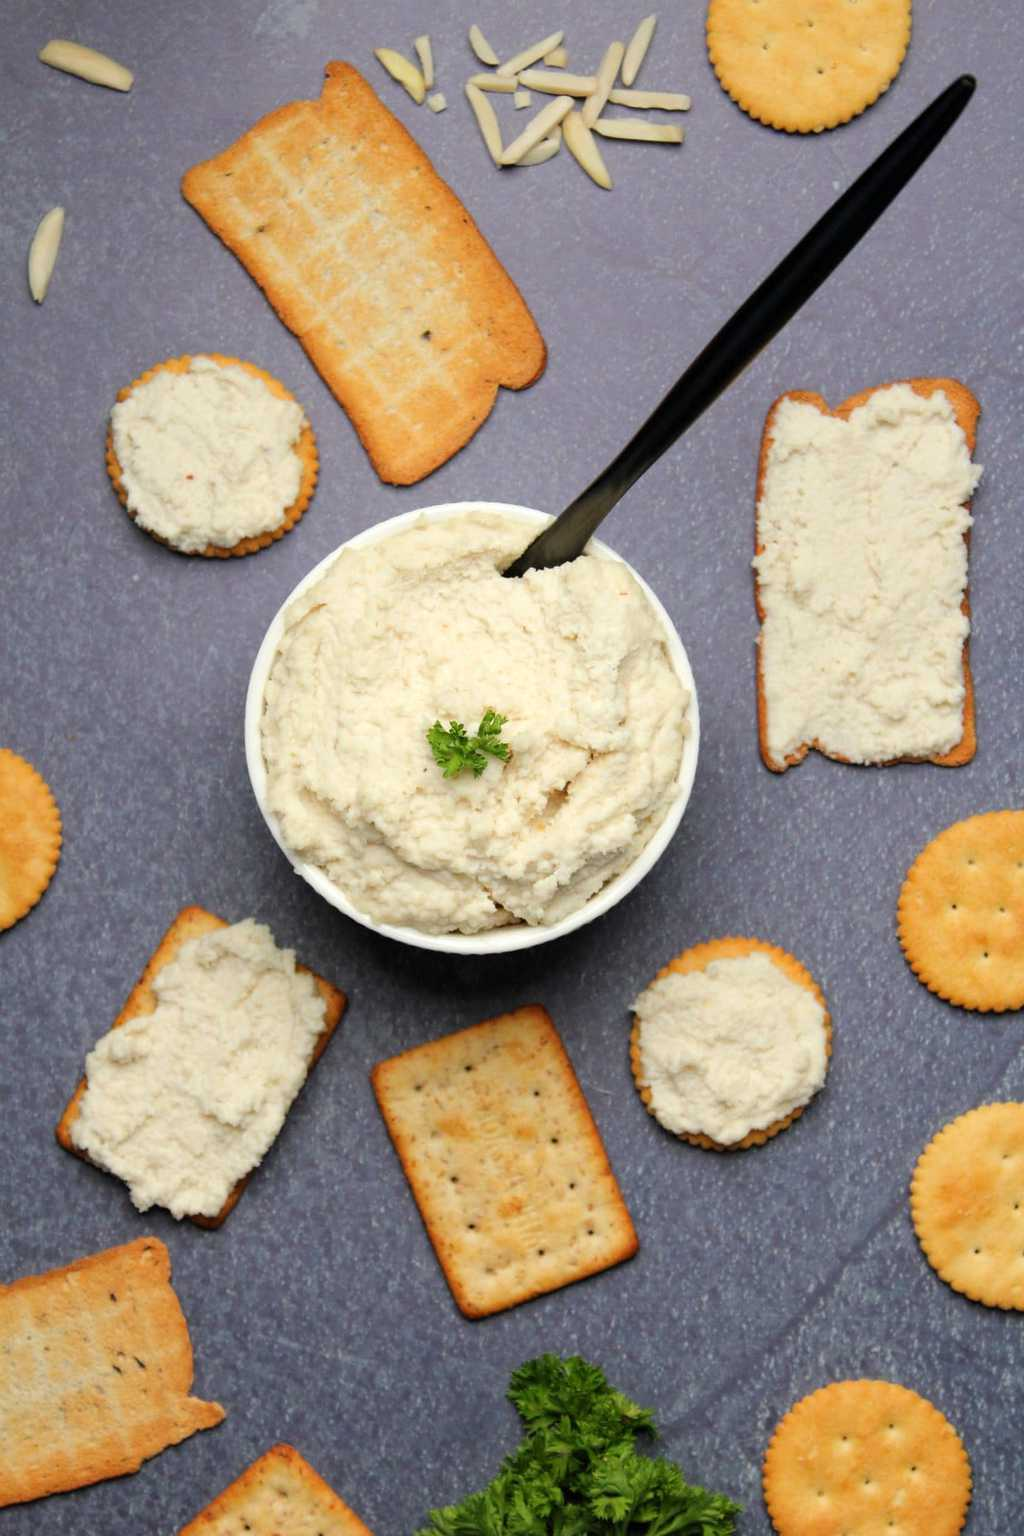 Vegan ricotta in a white bowl surrounded by crackers.